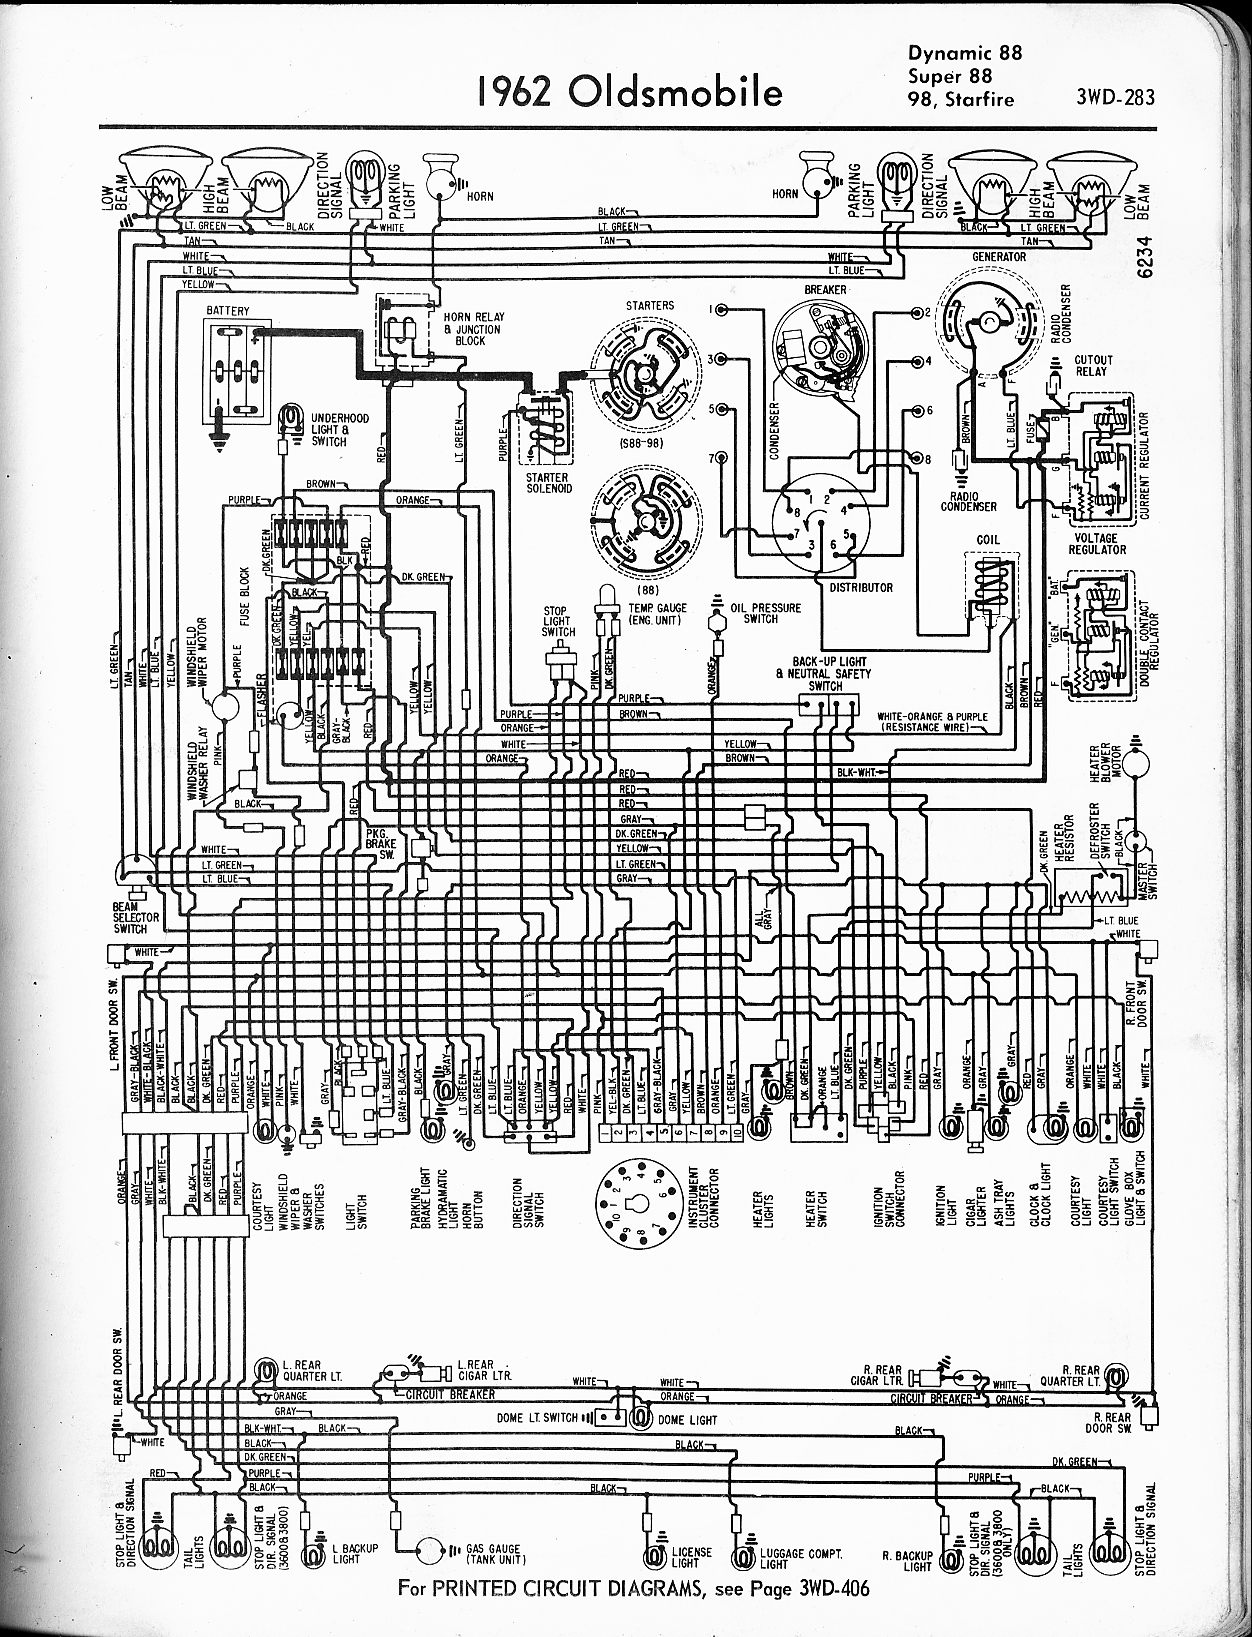 oldsmobile wiring diagram wiring diagrams online oldsmobile wiring diagrams the old car manual project